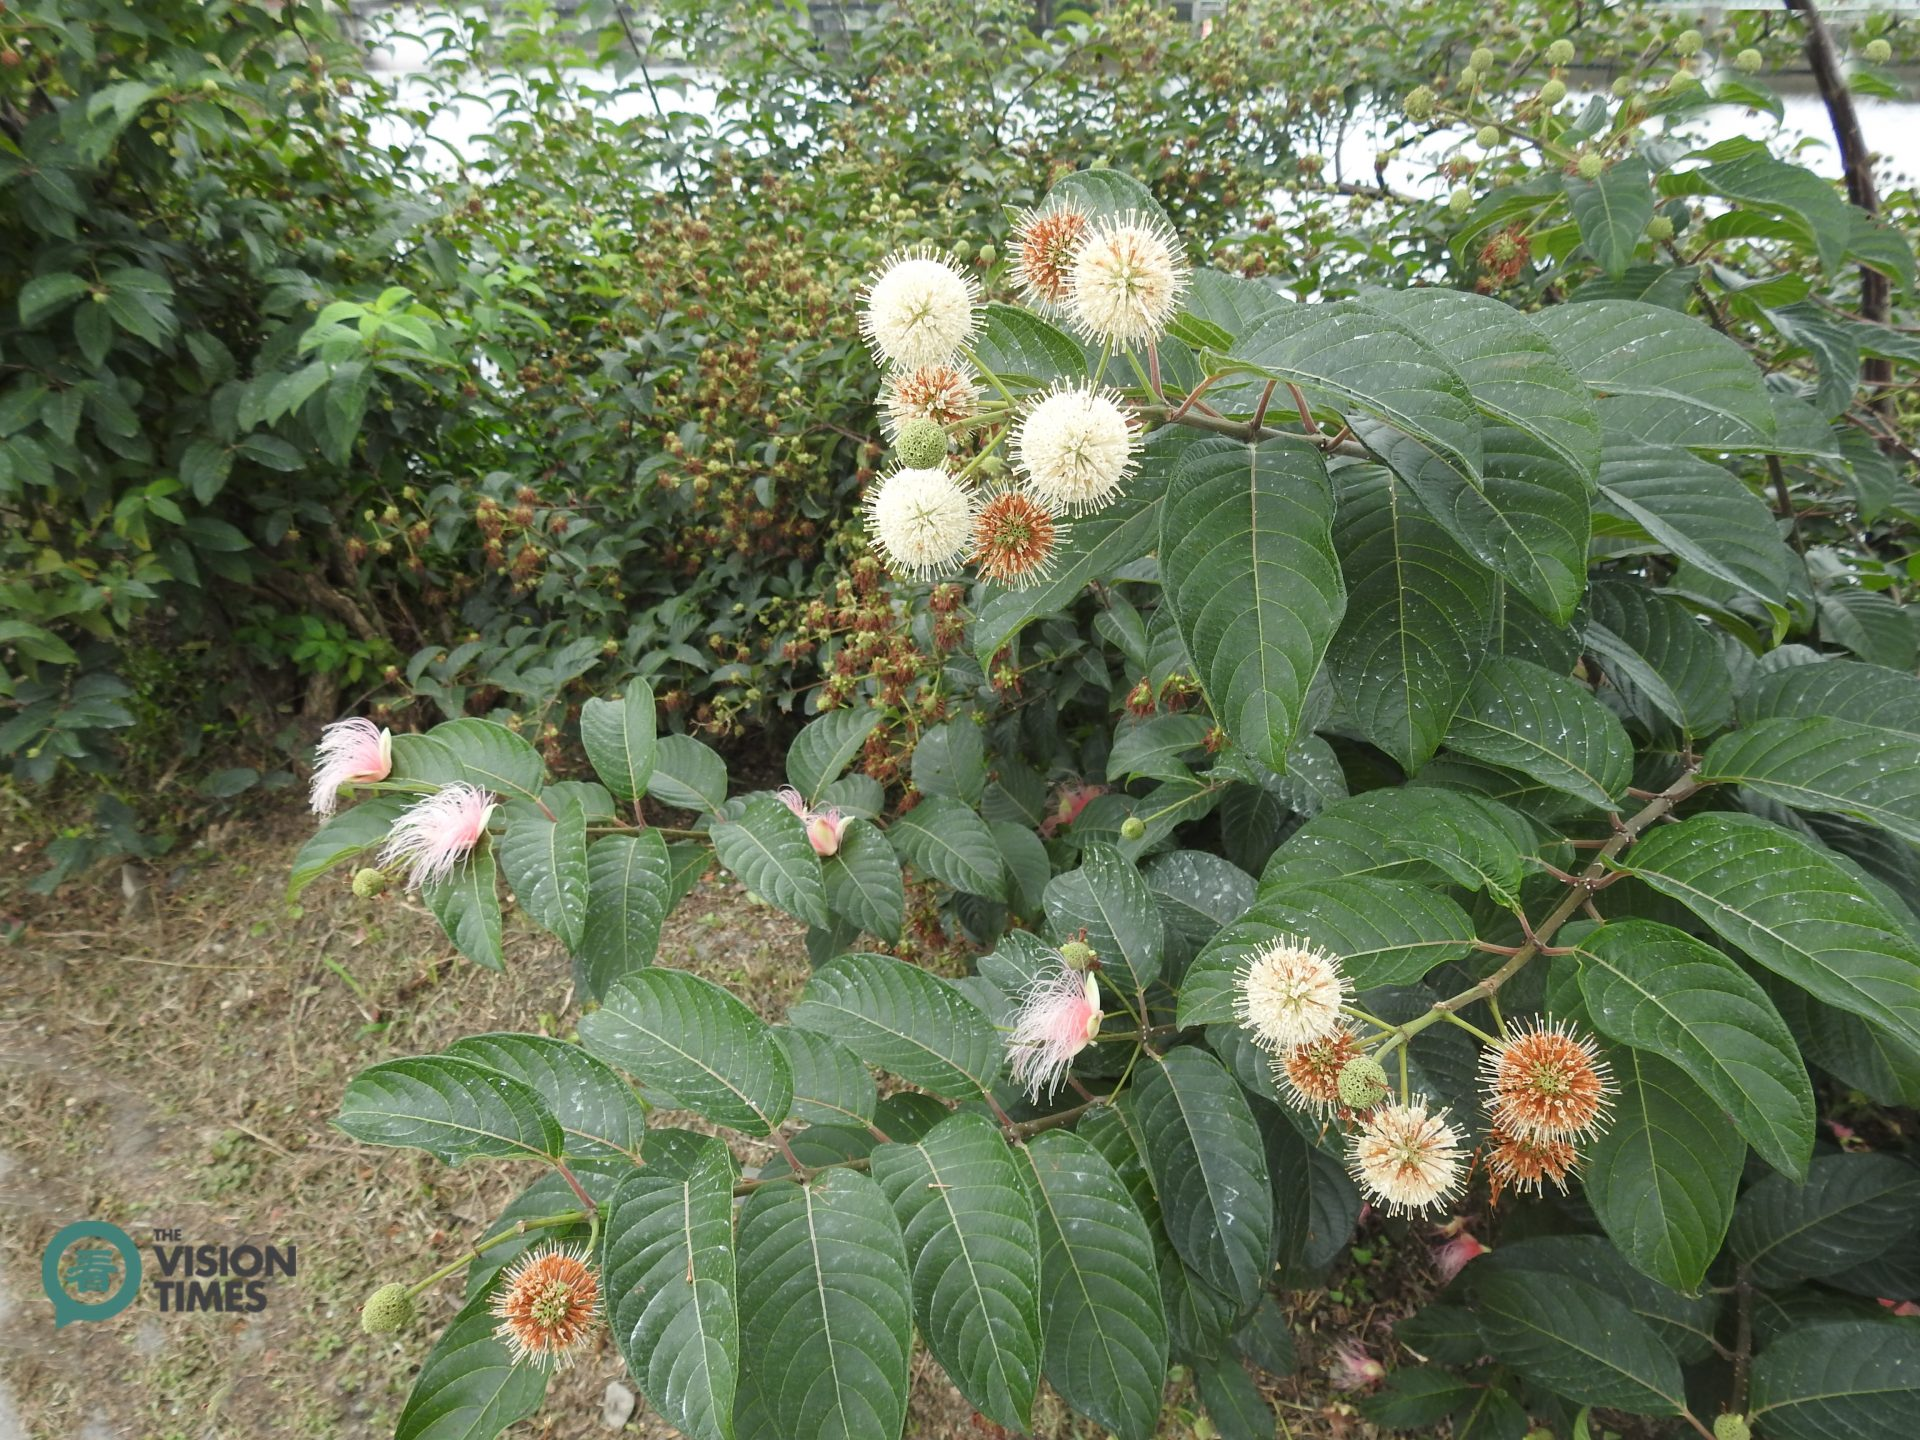 The Yilan 52-jia Wetland is home to buttonbush (風箱樹). (Image: Billy Shyu / Vision Times)